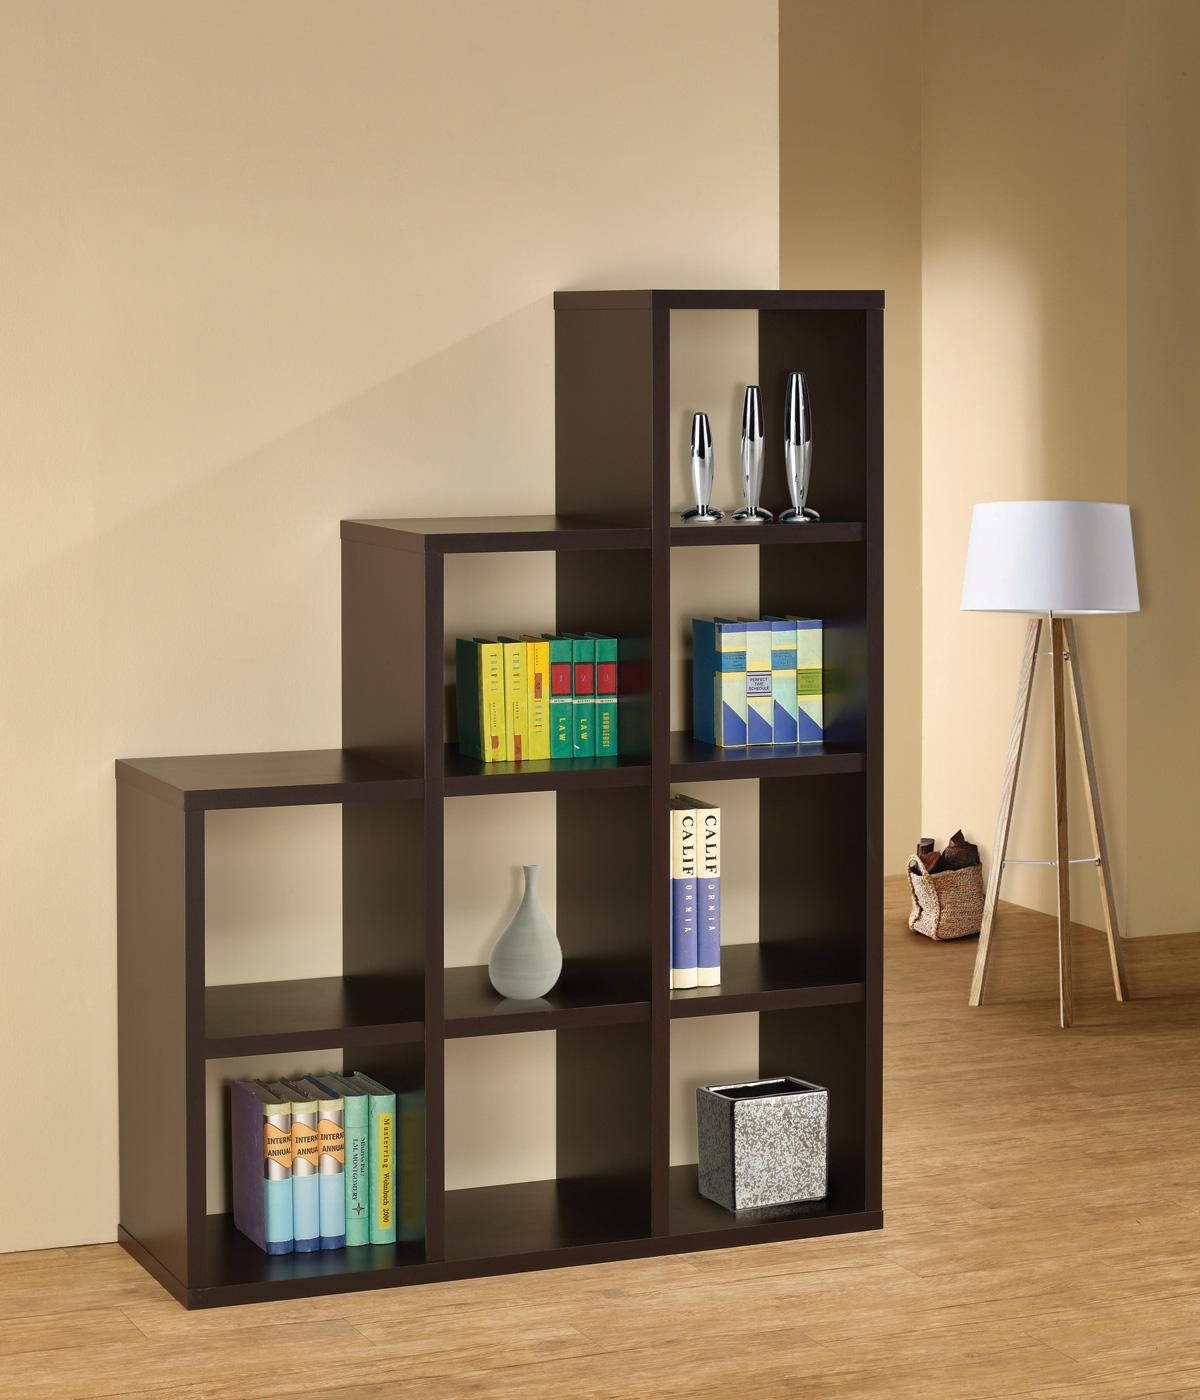 Cube Bookshelf: Best Cube Shelving Types And Design Ideas